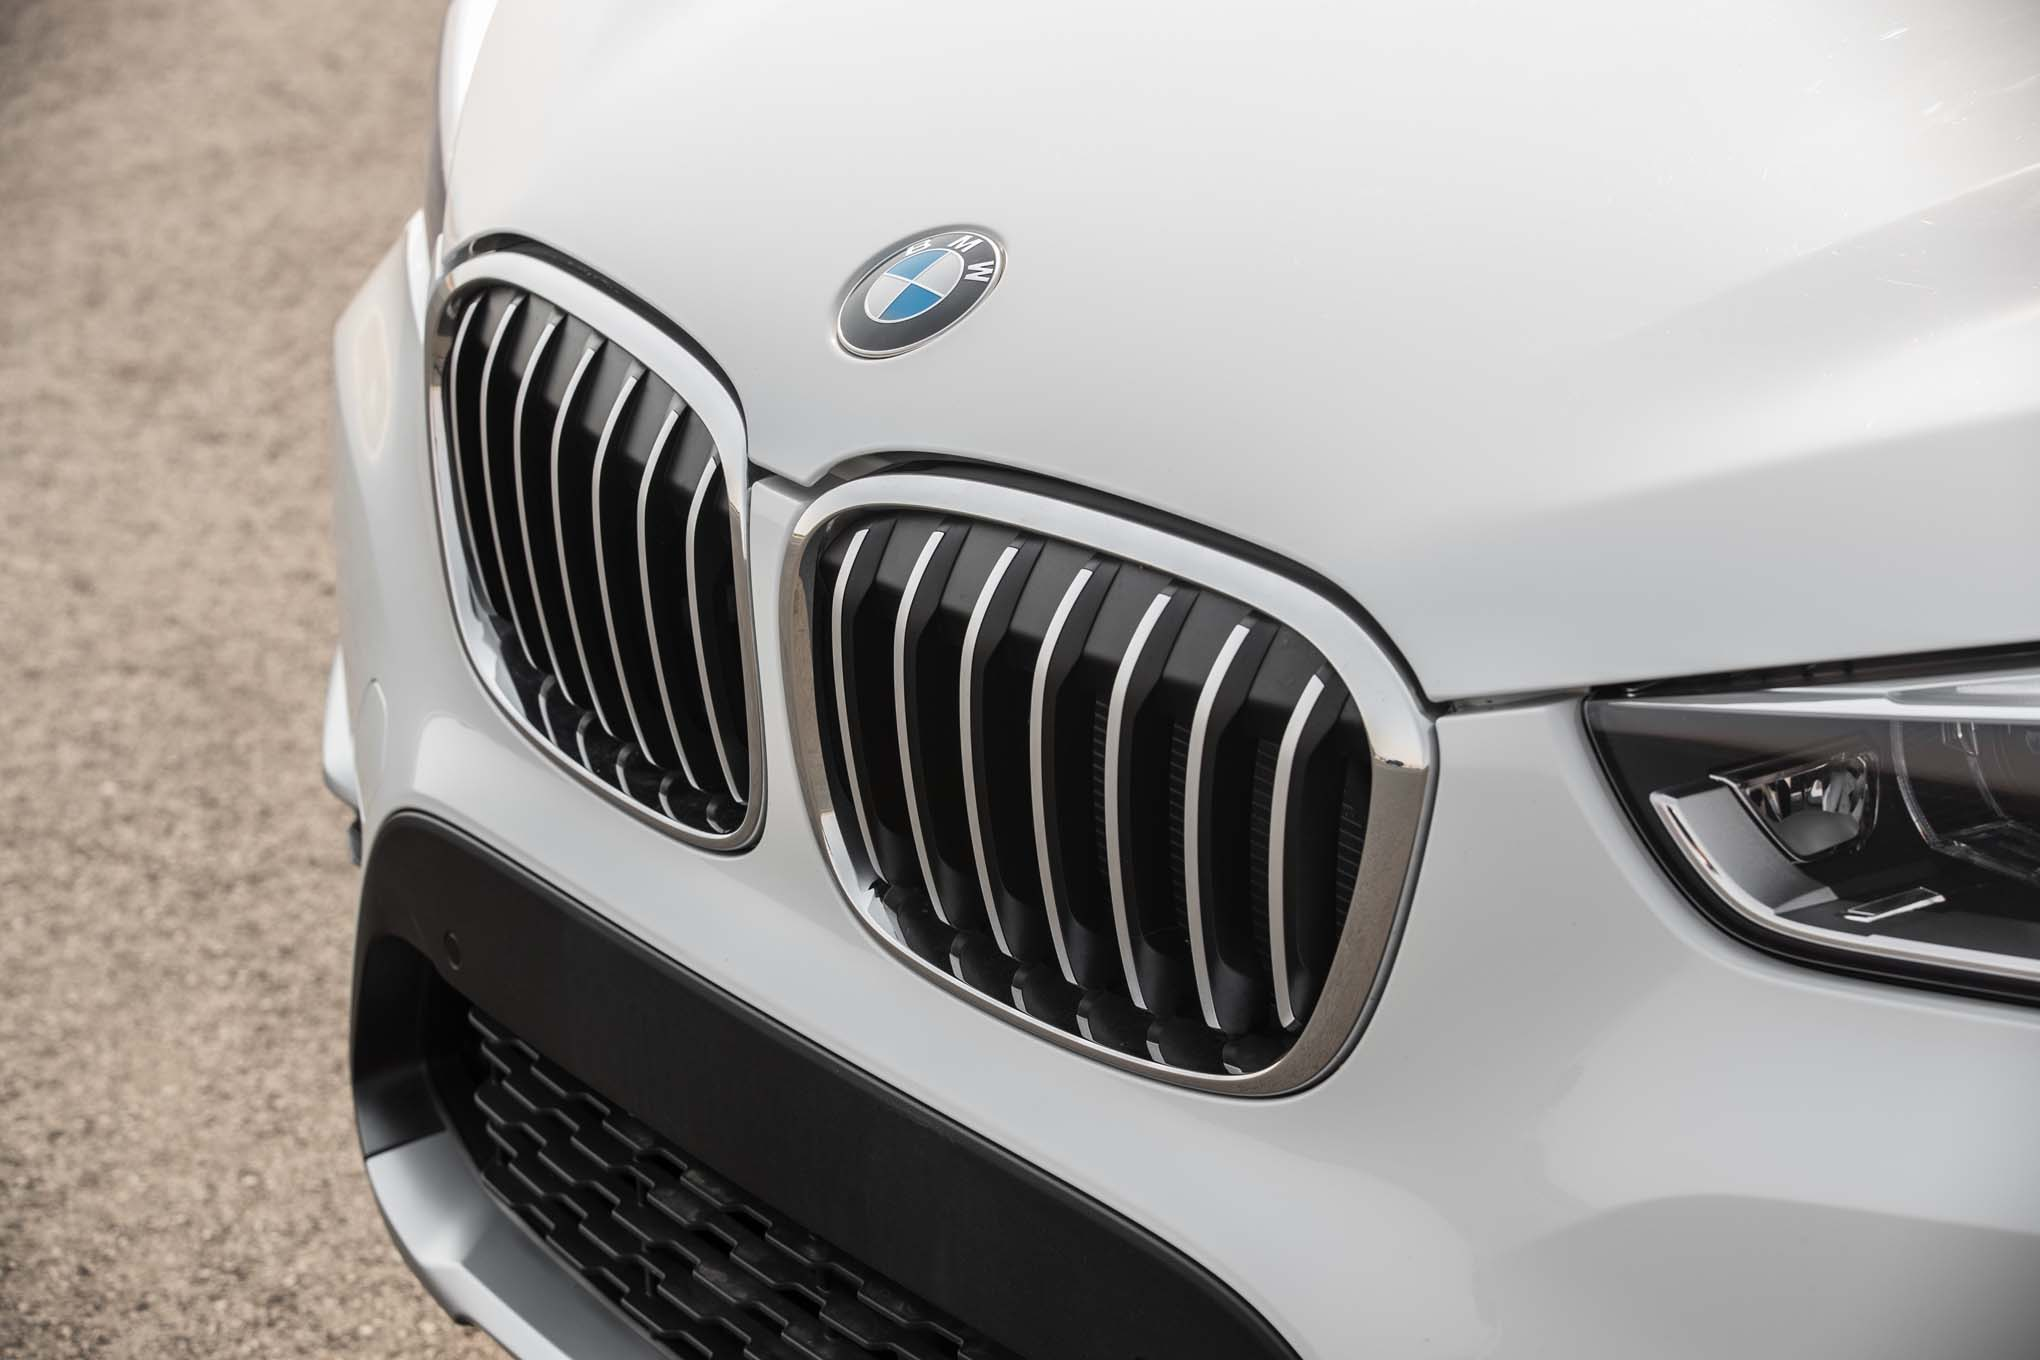 2017 BMW X1 XDrive28i Exterior View Grille (Photo 5 of 23)